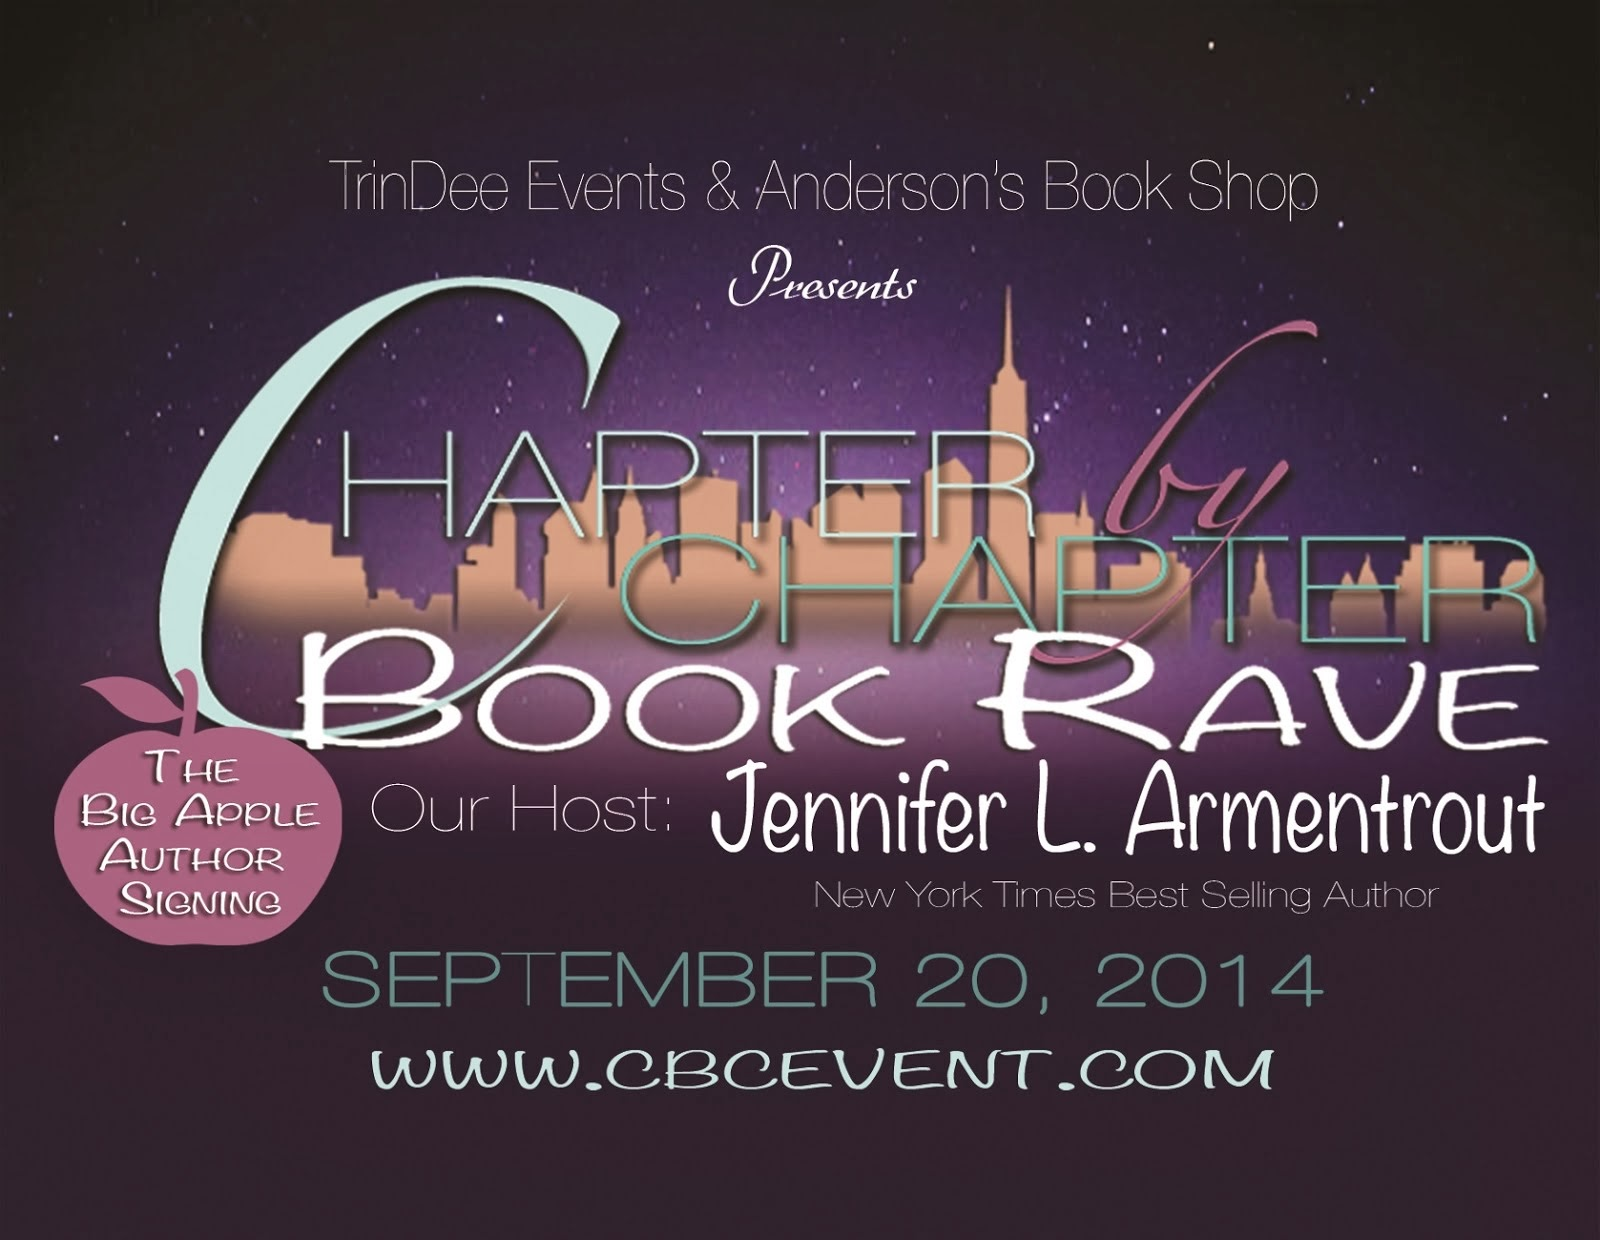 Chapter by Chapter Book Rave!